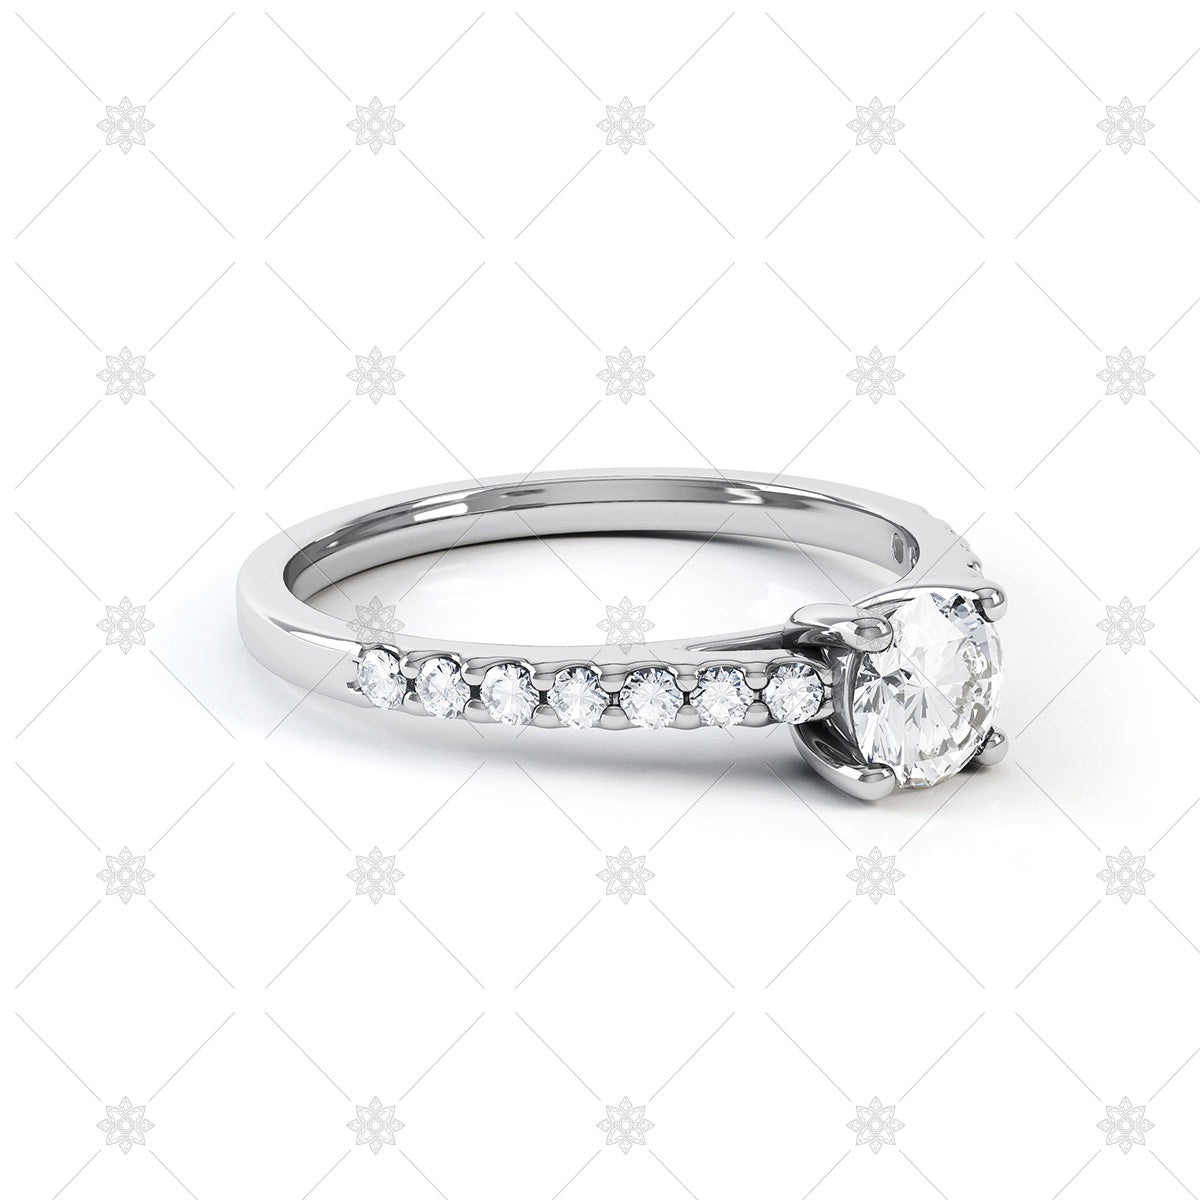 diamond solitaire ring with pave shoulders